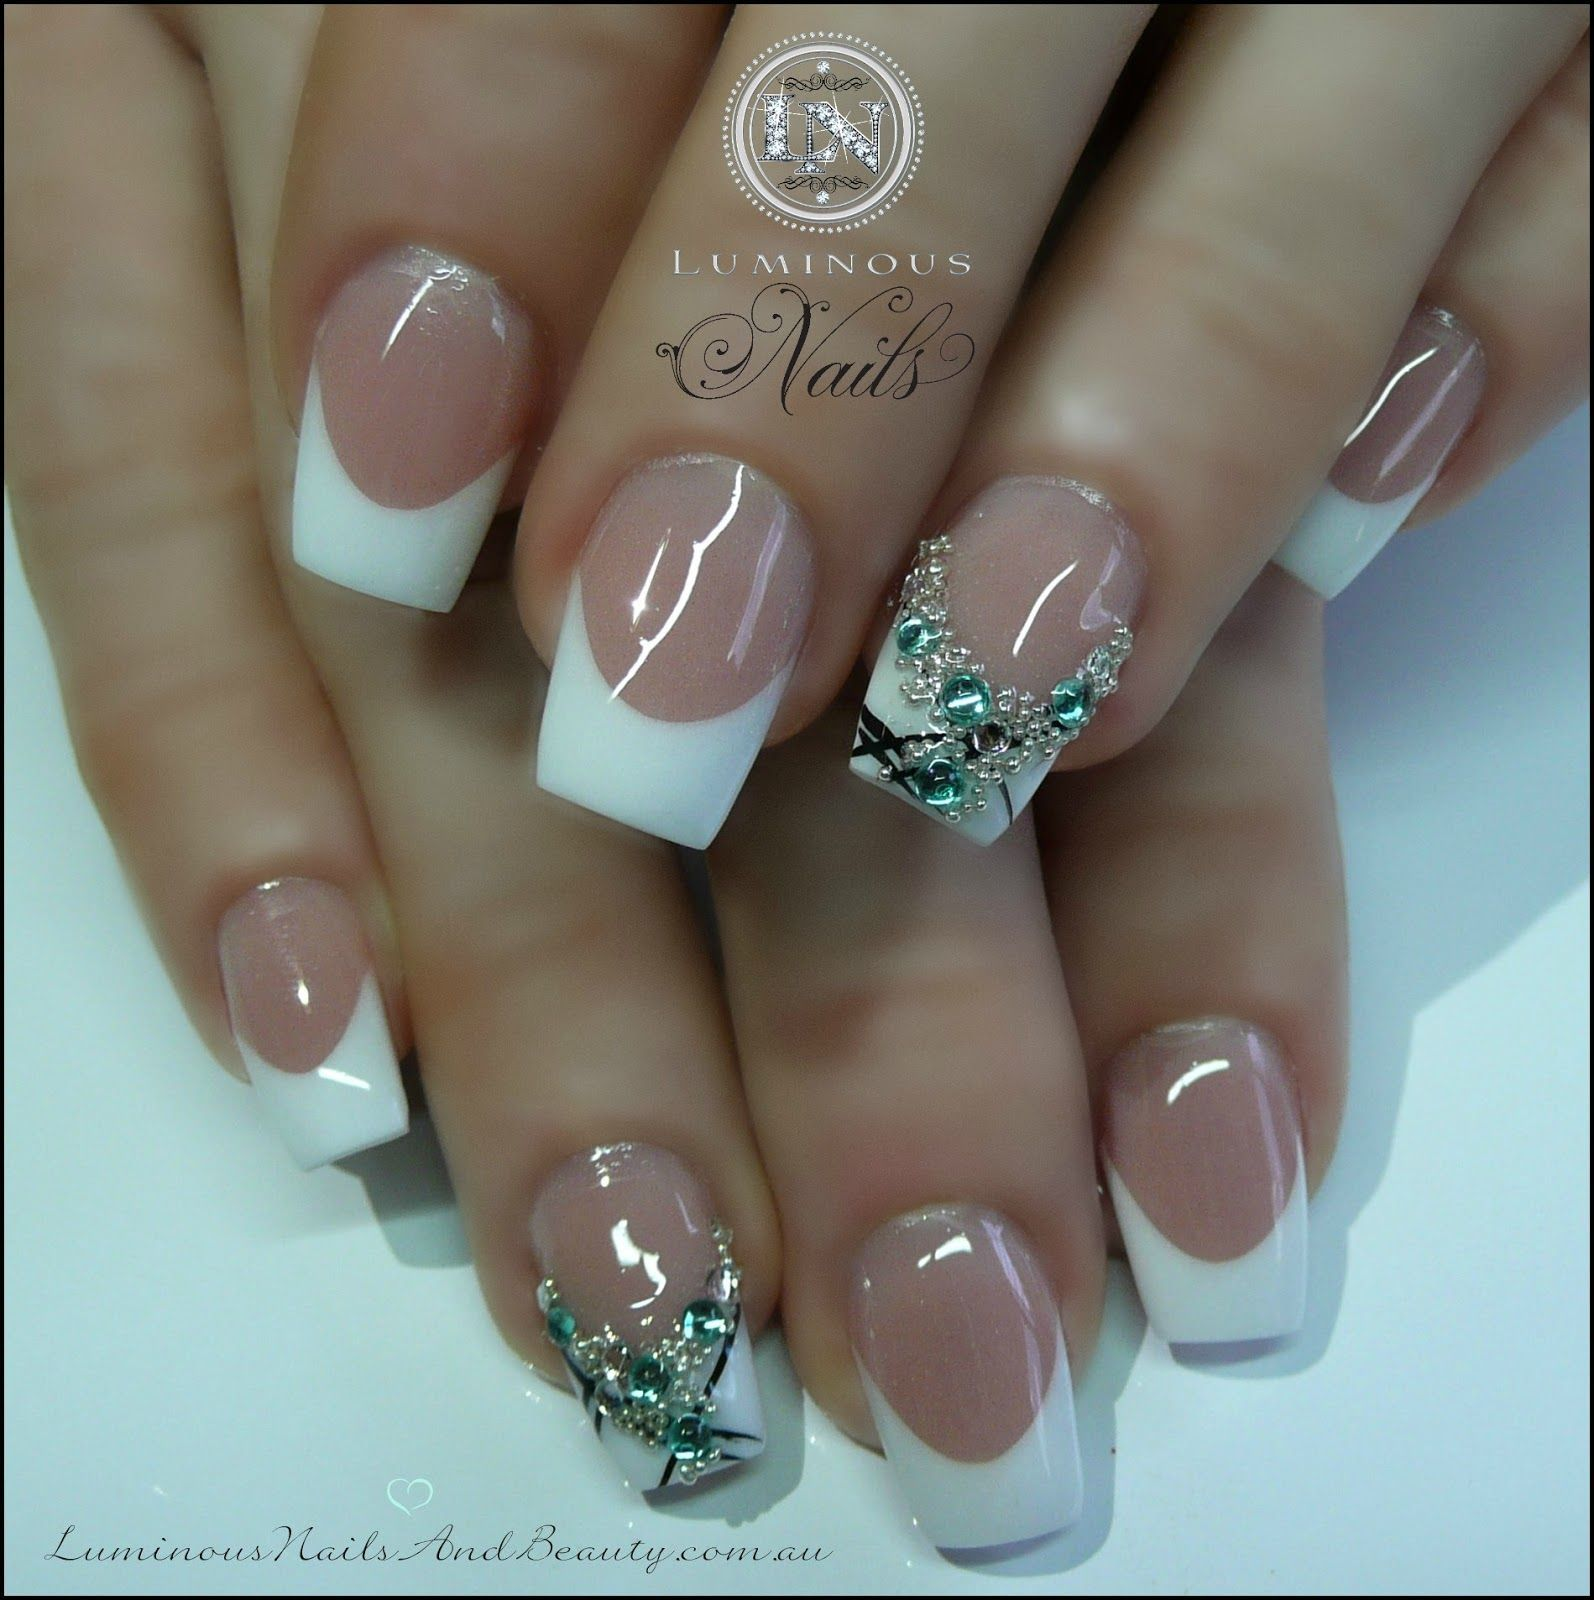 Luminous Nails: French Nails with a little Bling... | Beauty | Pinterest